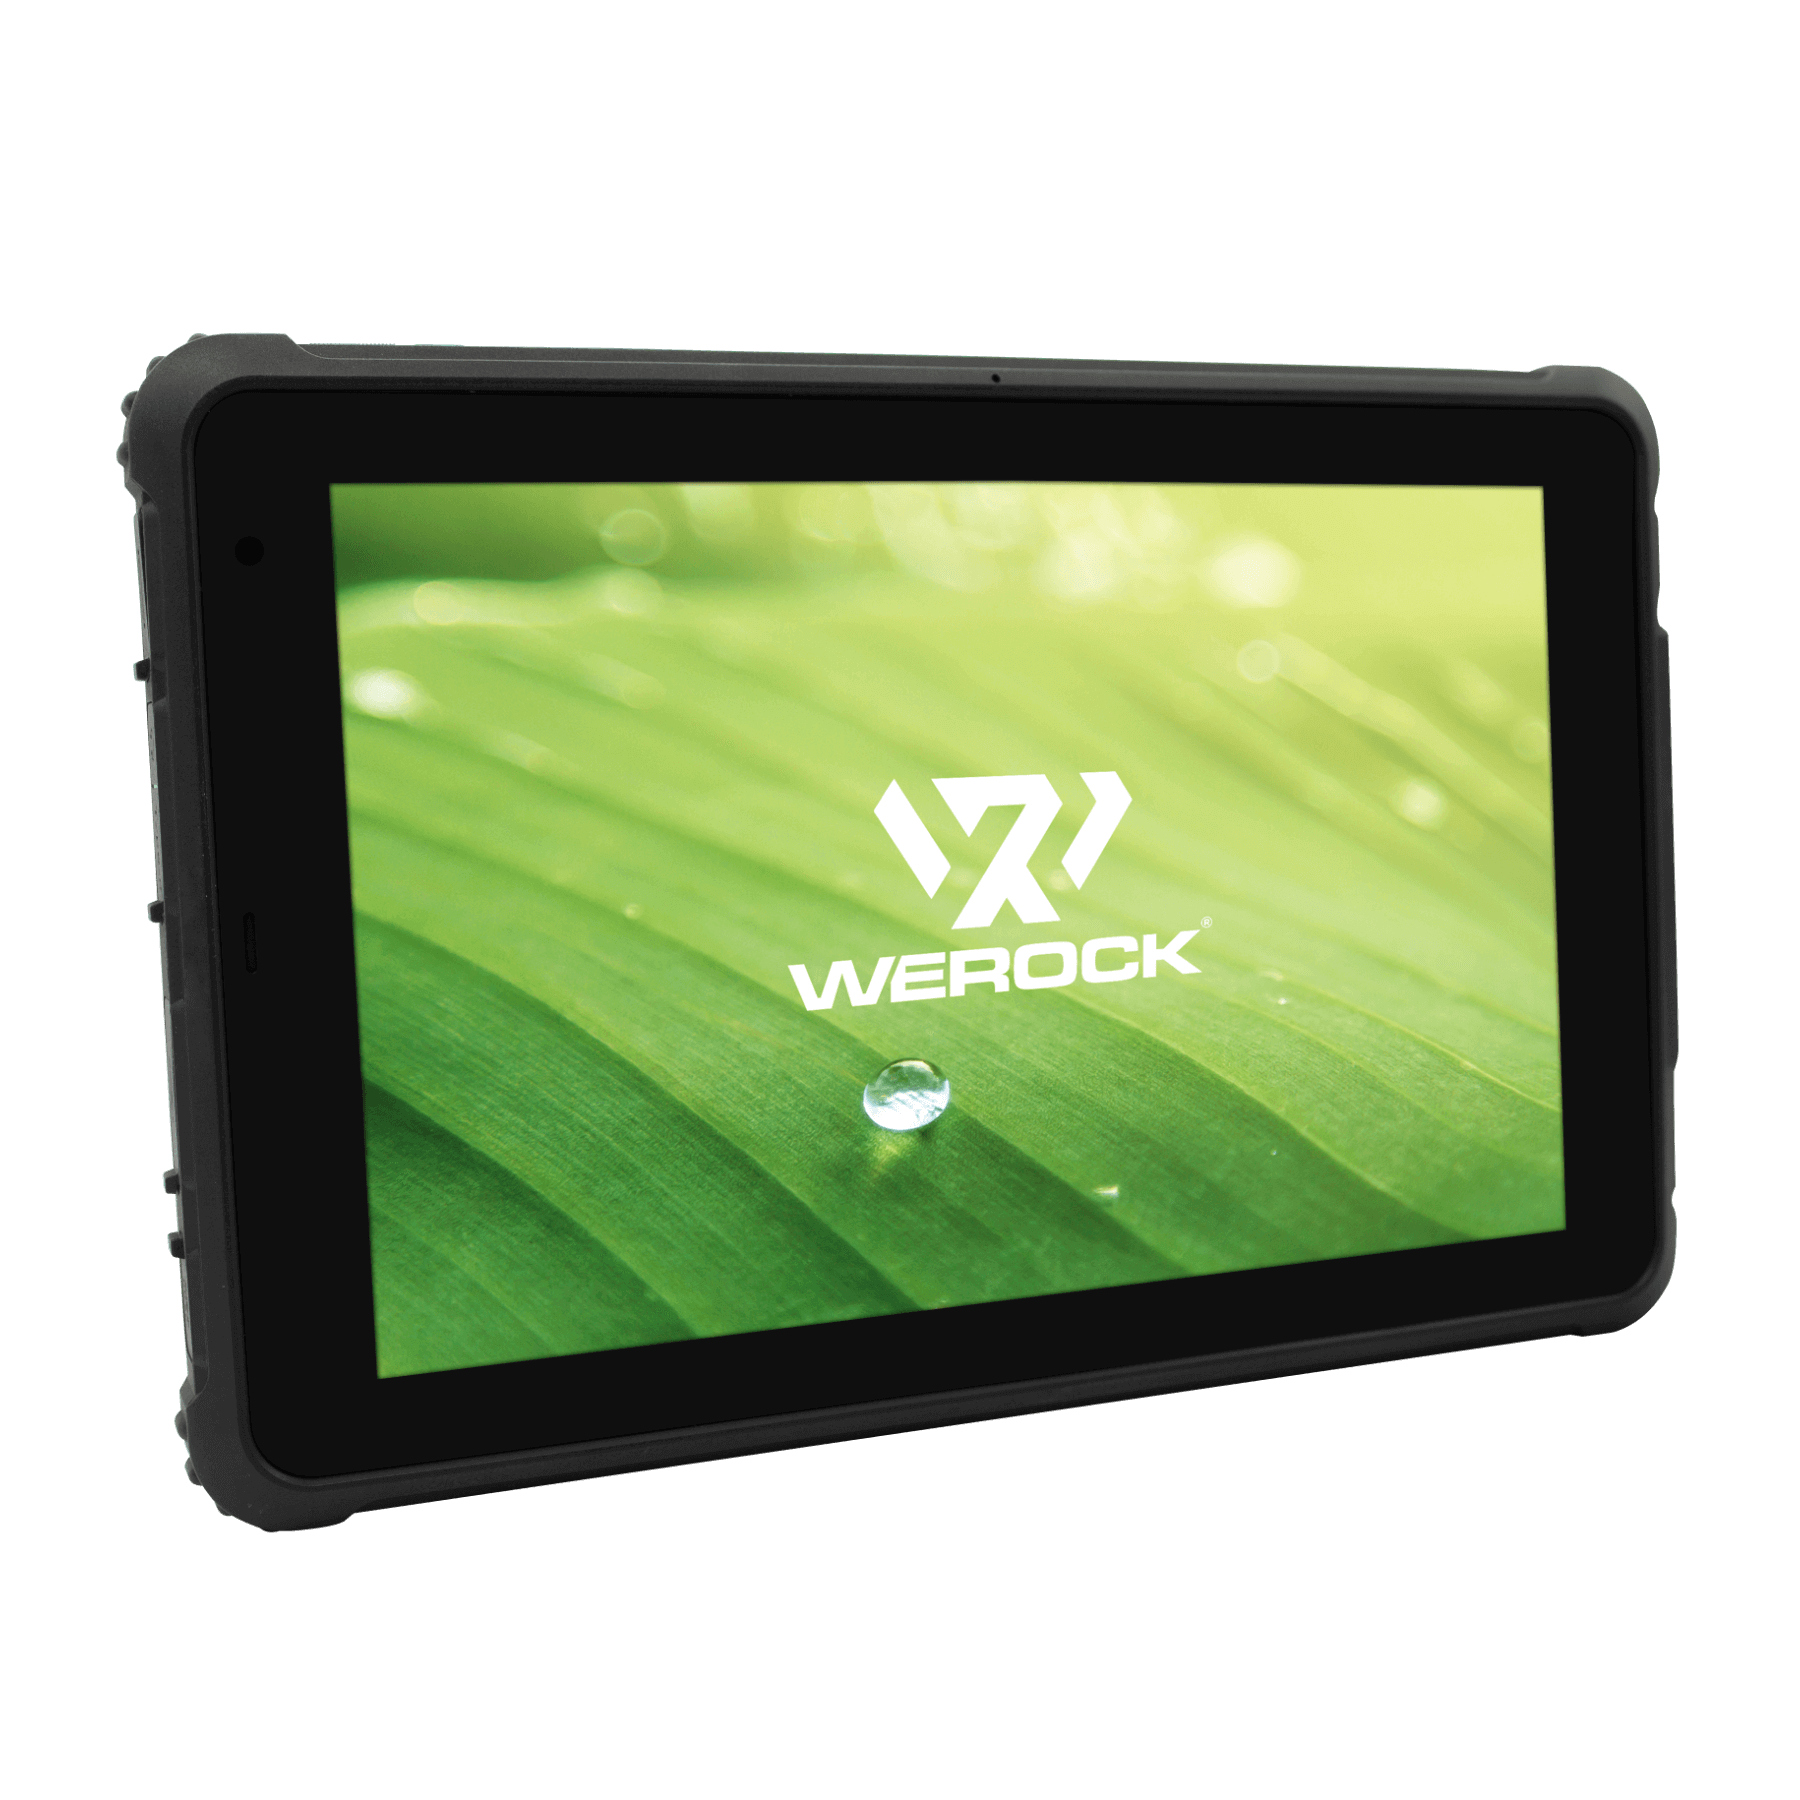 Rocktab S110 Rugged Tablet view from front, slightly angled